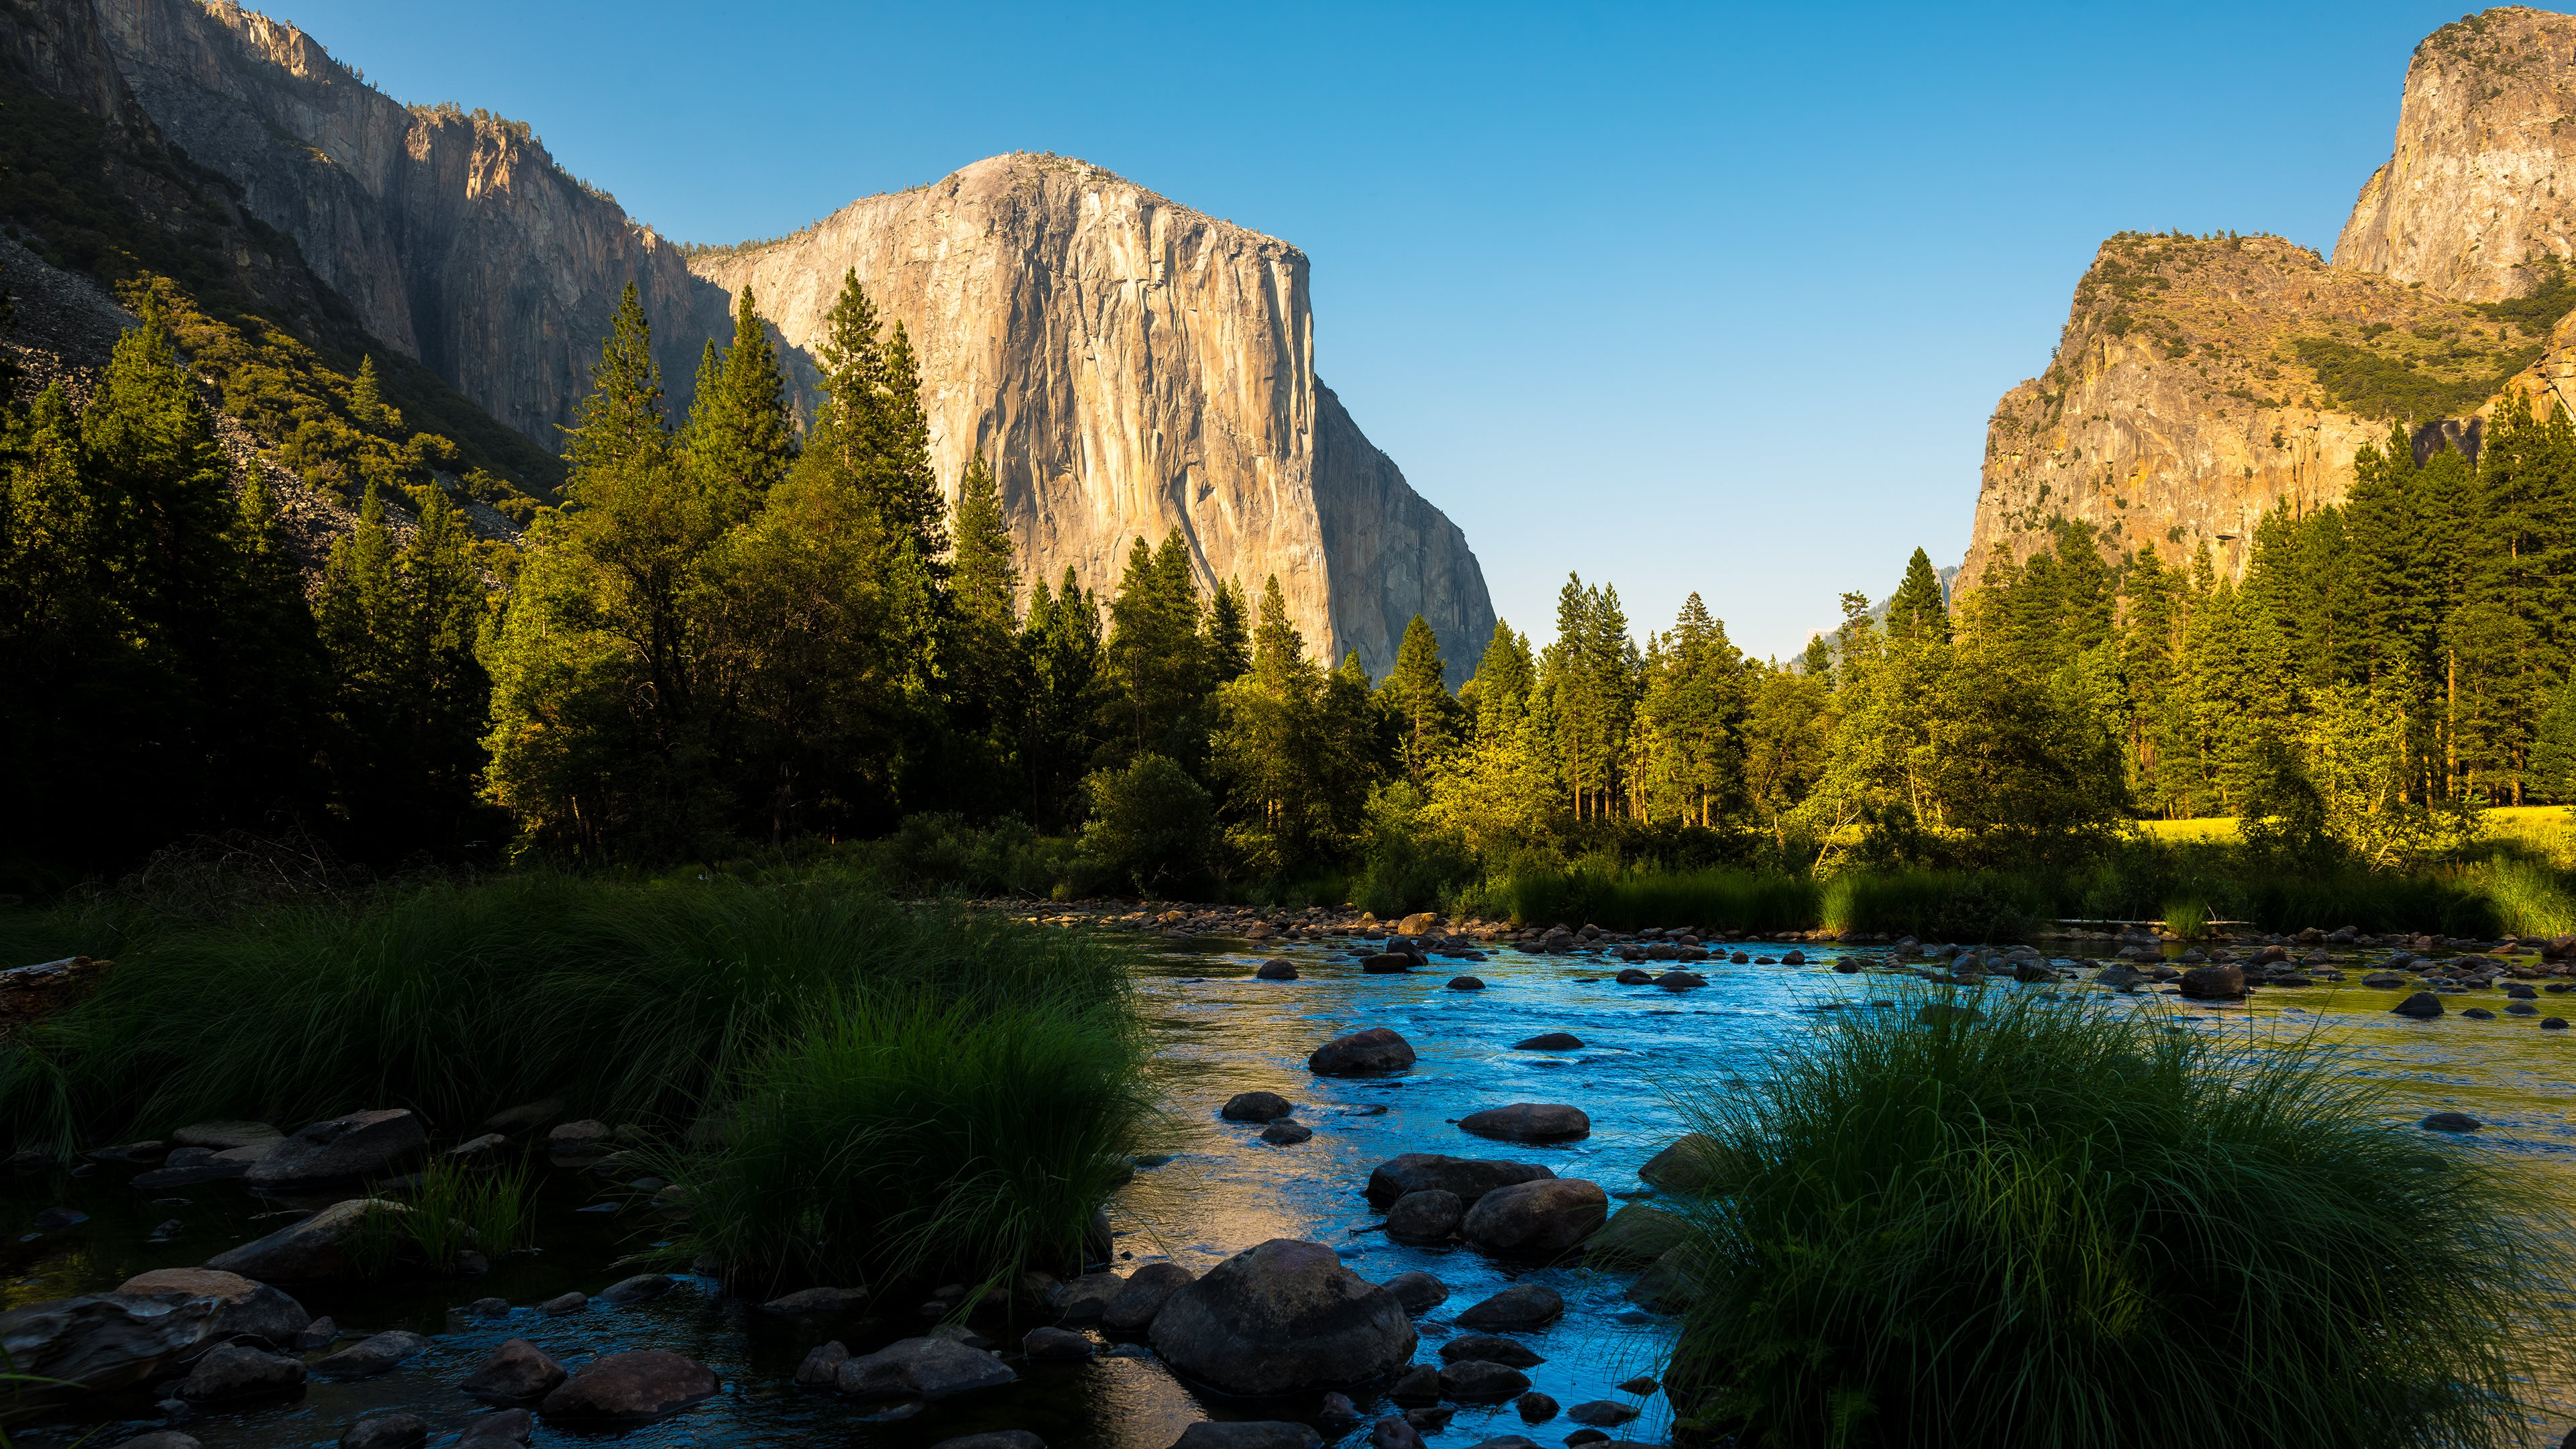 Hd wallpaper yosemite - Ultra Hd 4k 3840x2160